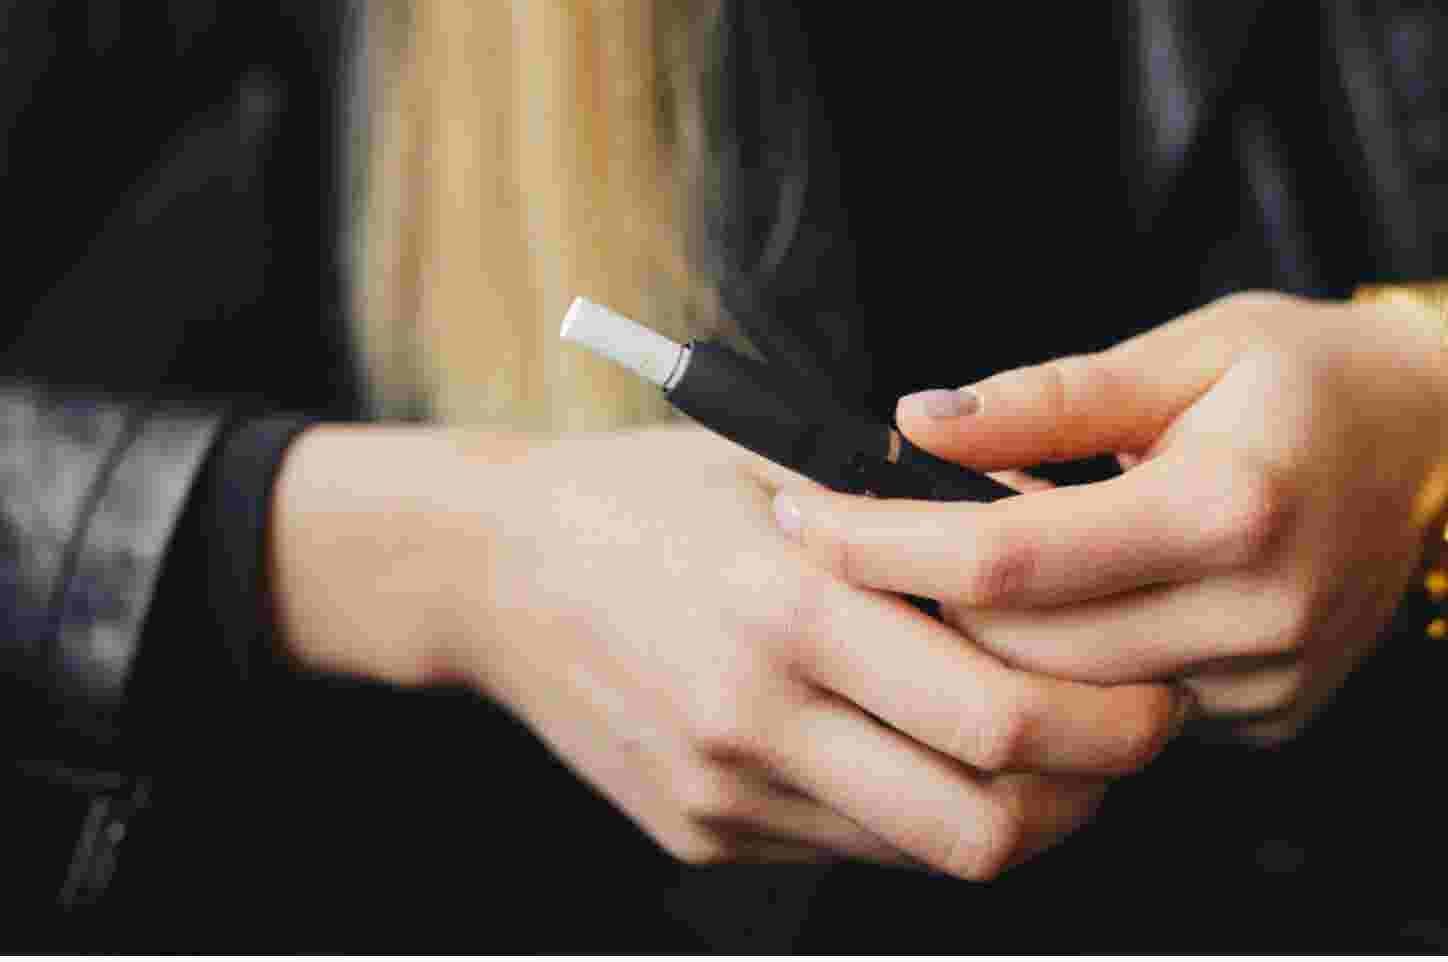 Vaping-related lung disease: 2 confirmed cases in Buncombe County